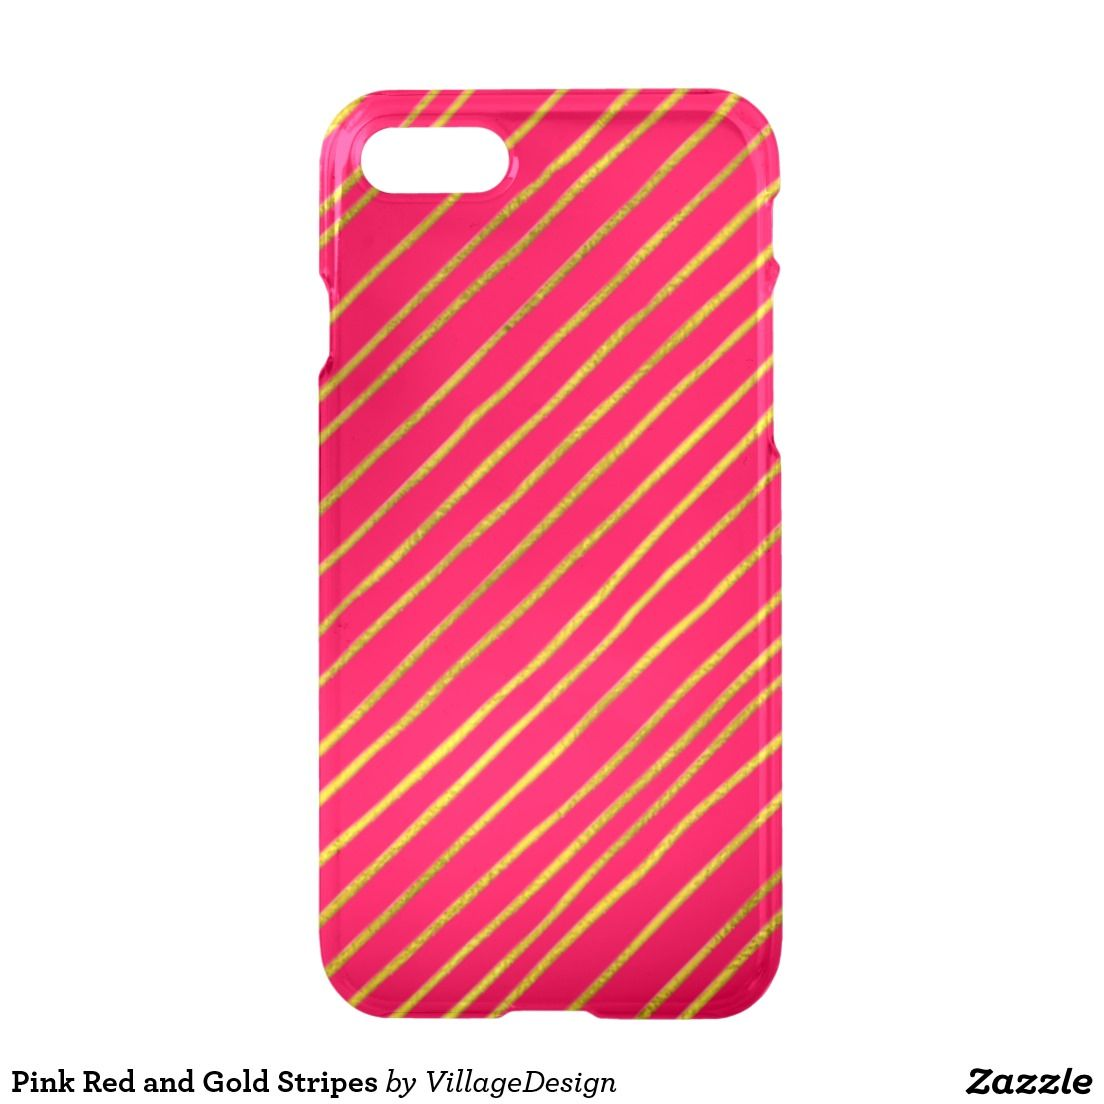 Pink Red and Gold Stripes iPhone 7 Case